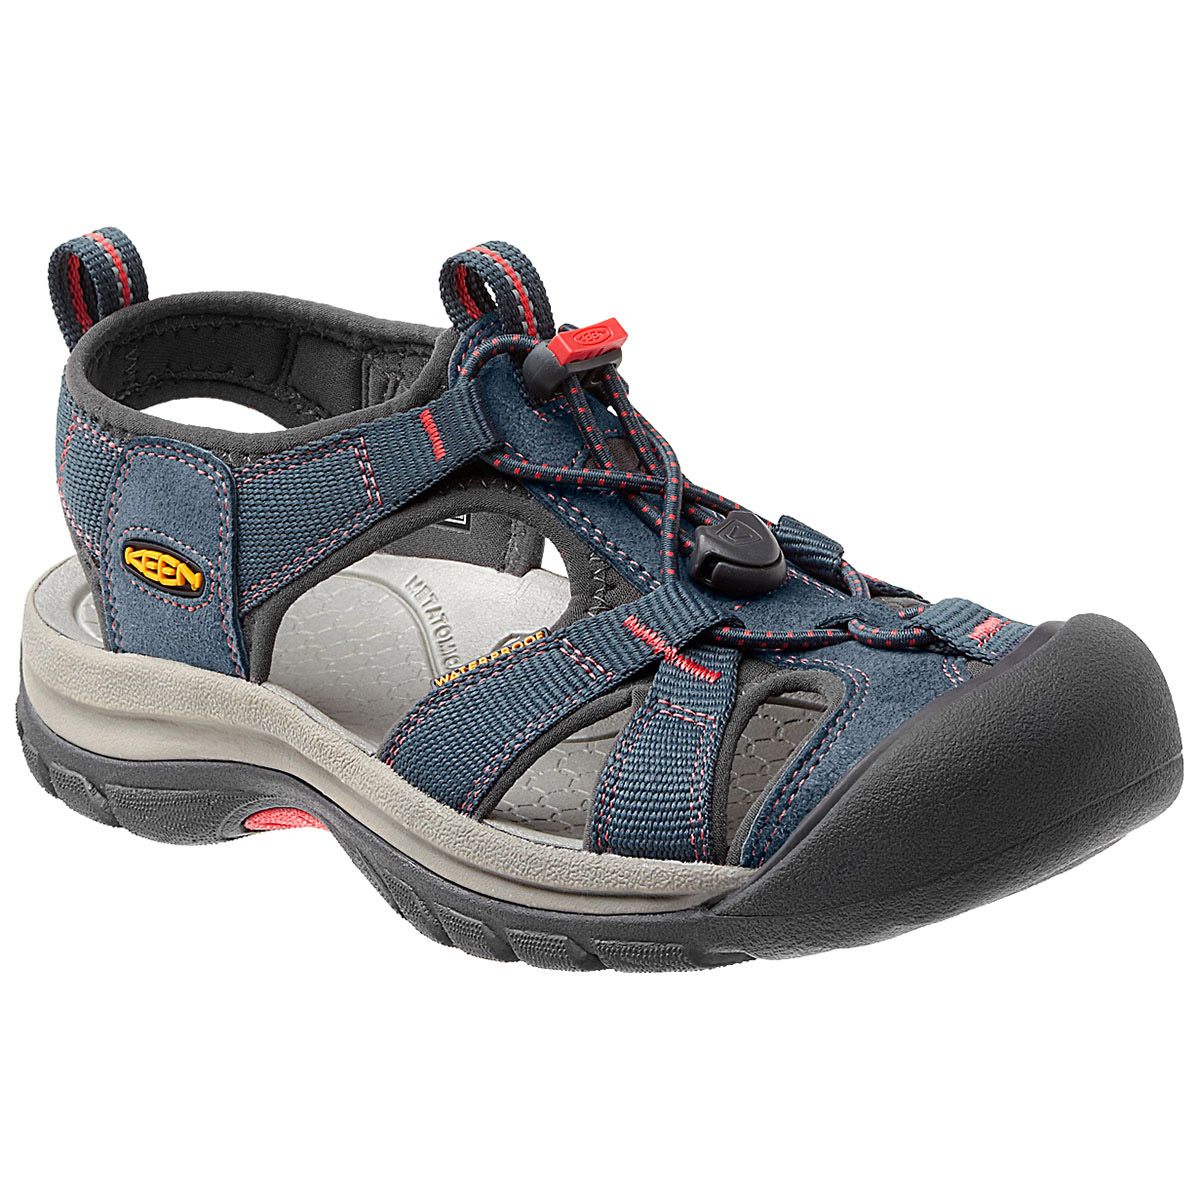 Keen Women's Venice H2 Sandals, Midnight Navy - Blue, 10